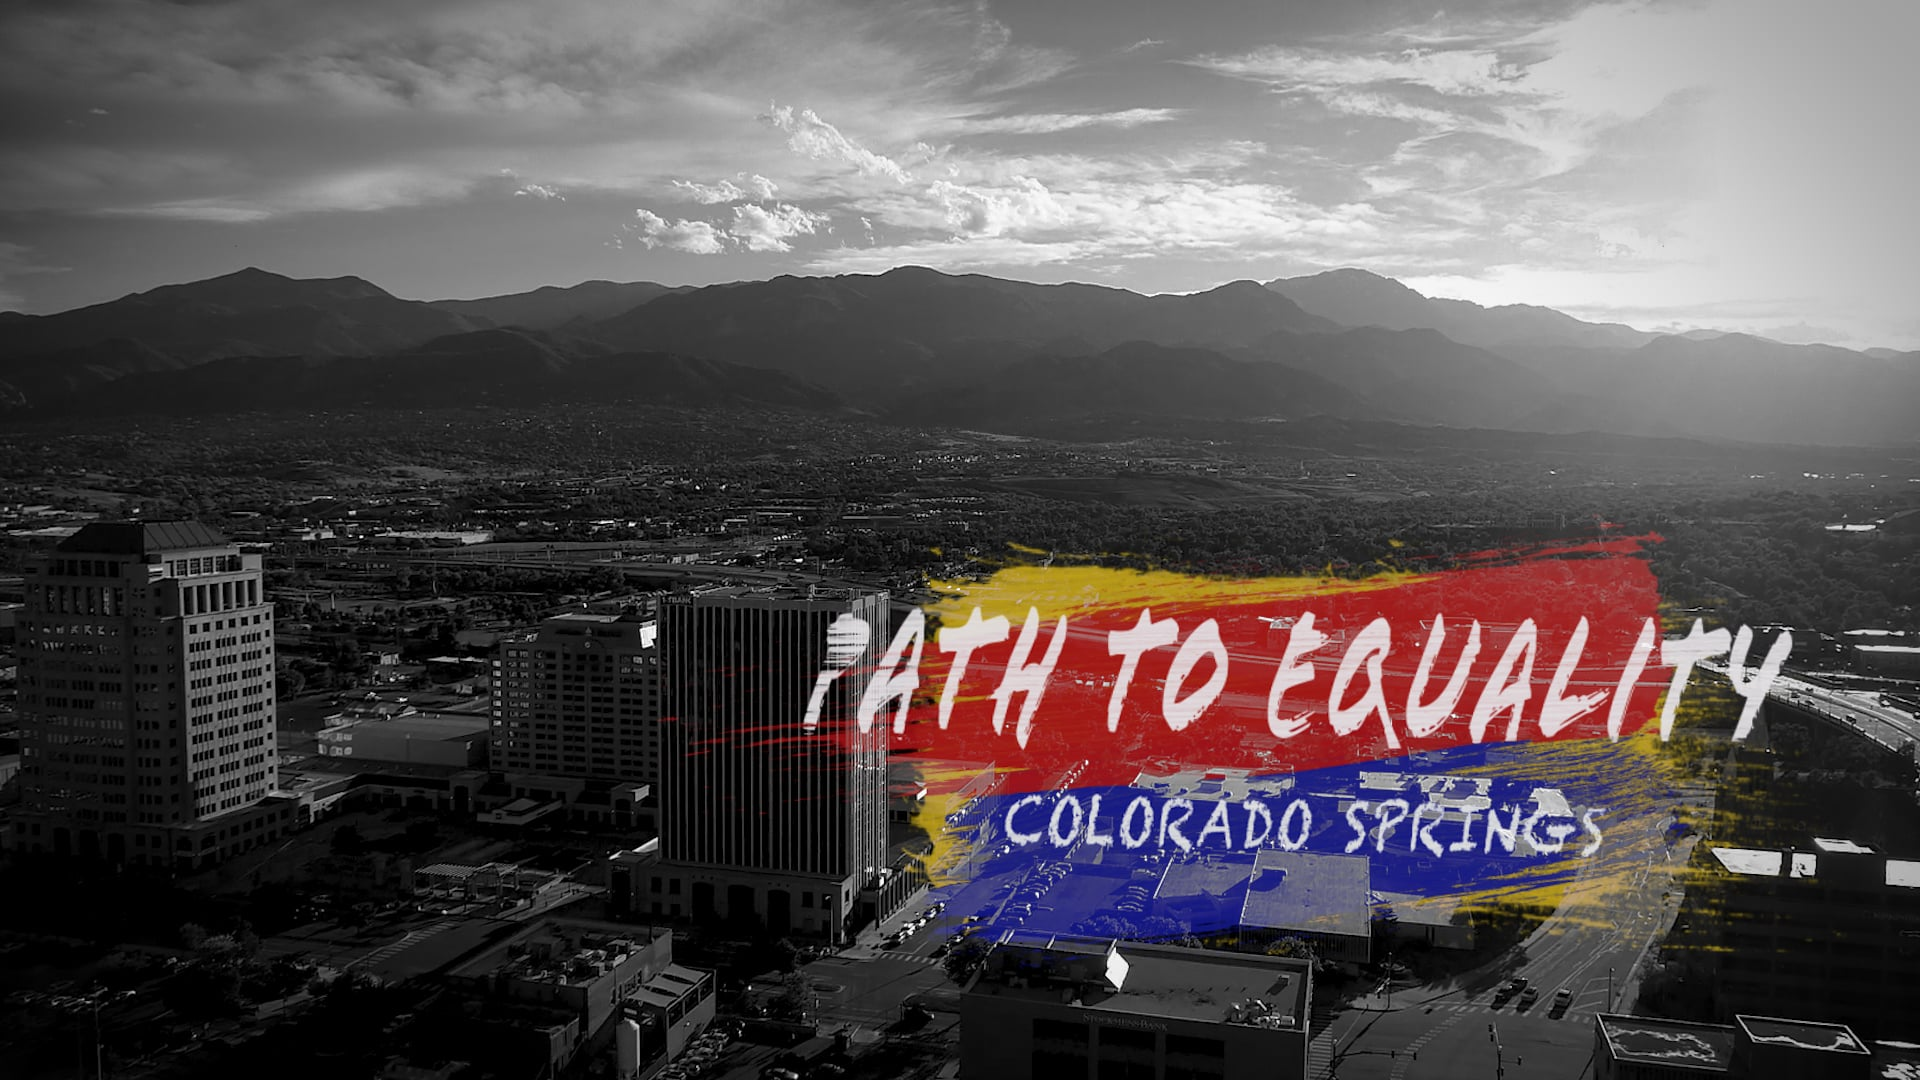 Path to Equality in Colorado Springs